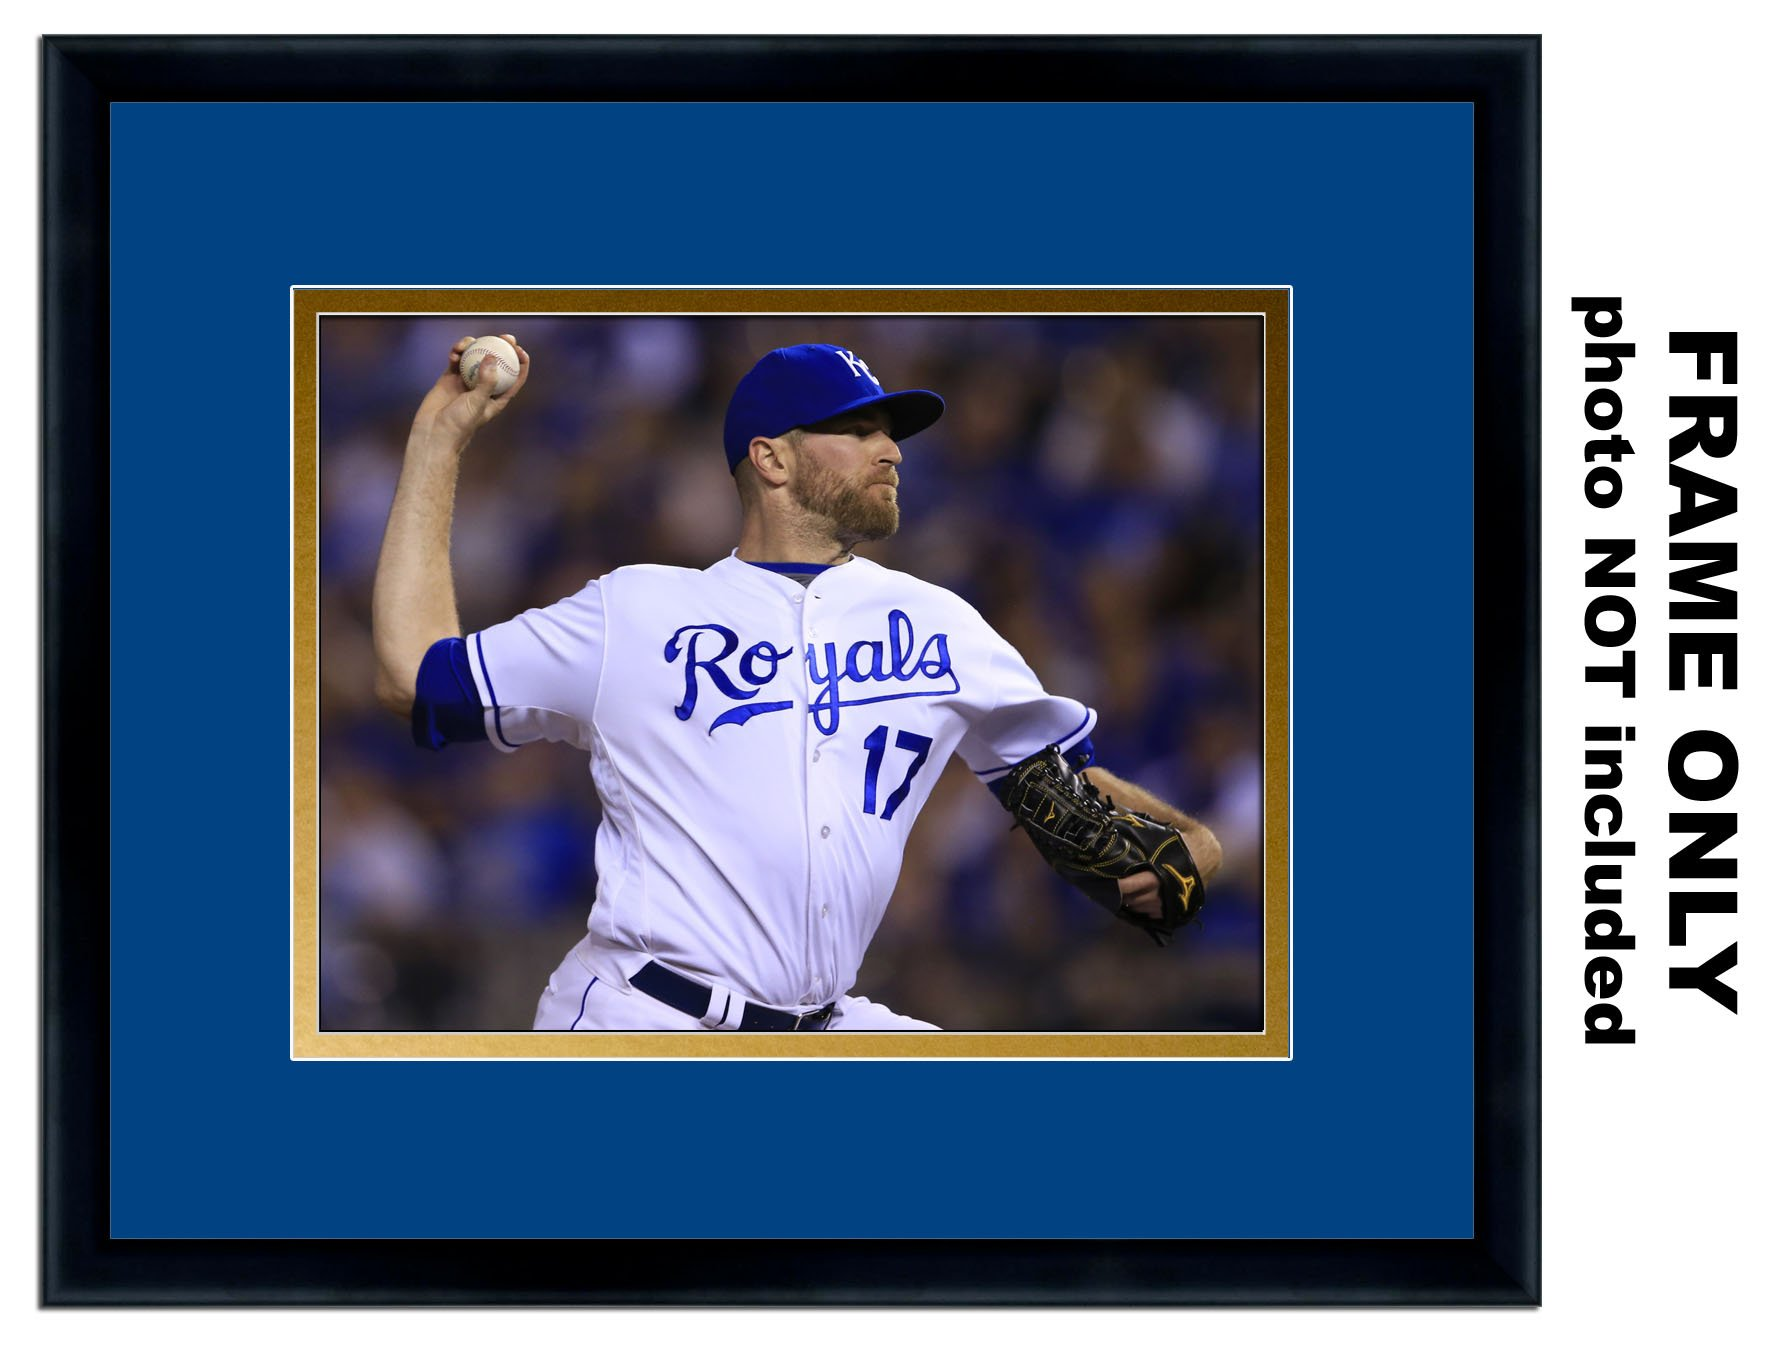 5x7 Photo Frame - with Kansas City Royals Colors Double Mat by The Kansas City Star